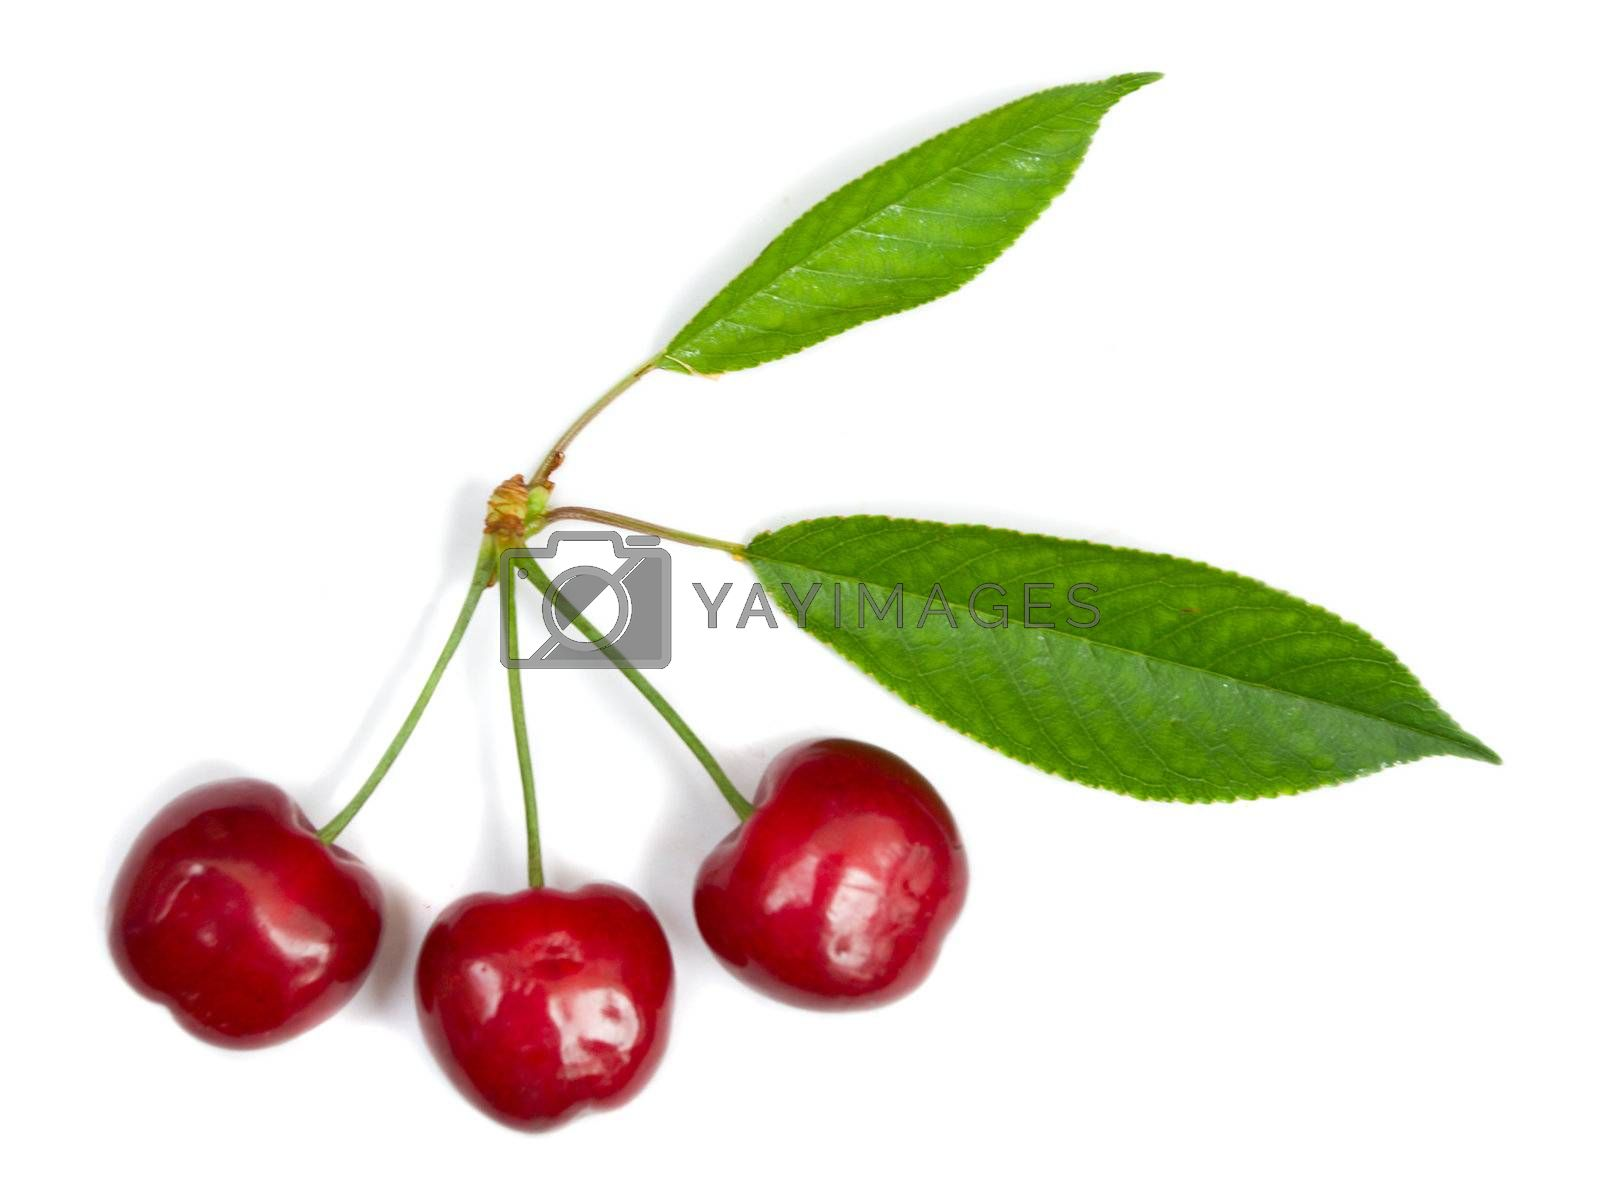 close-up three ripe cherries with leaves, isolated on white